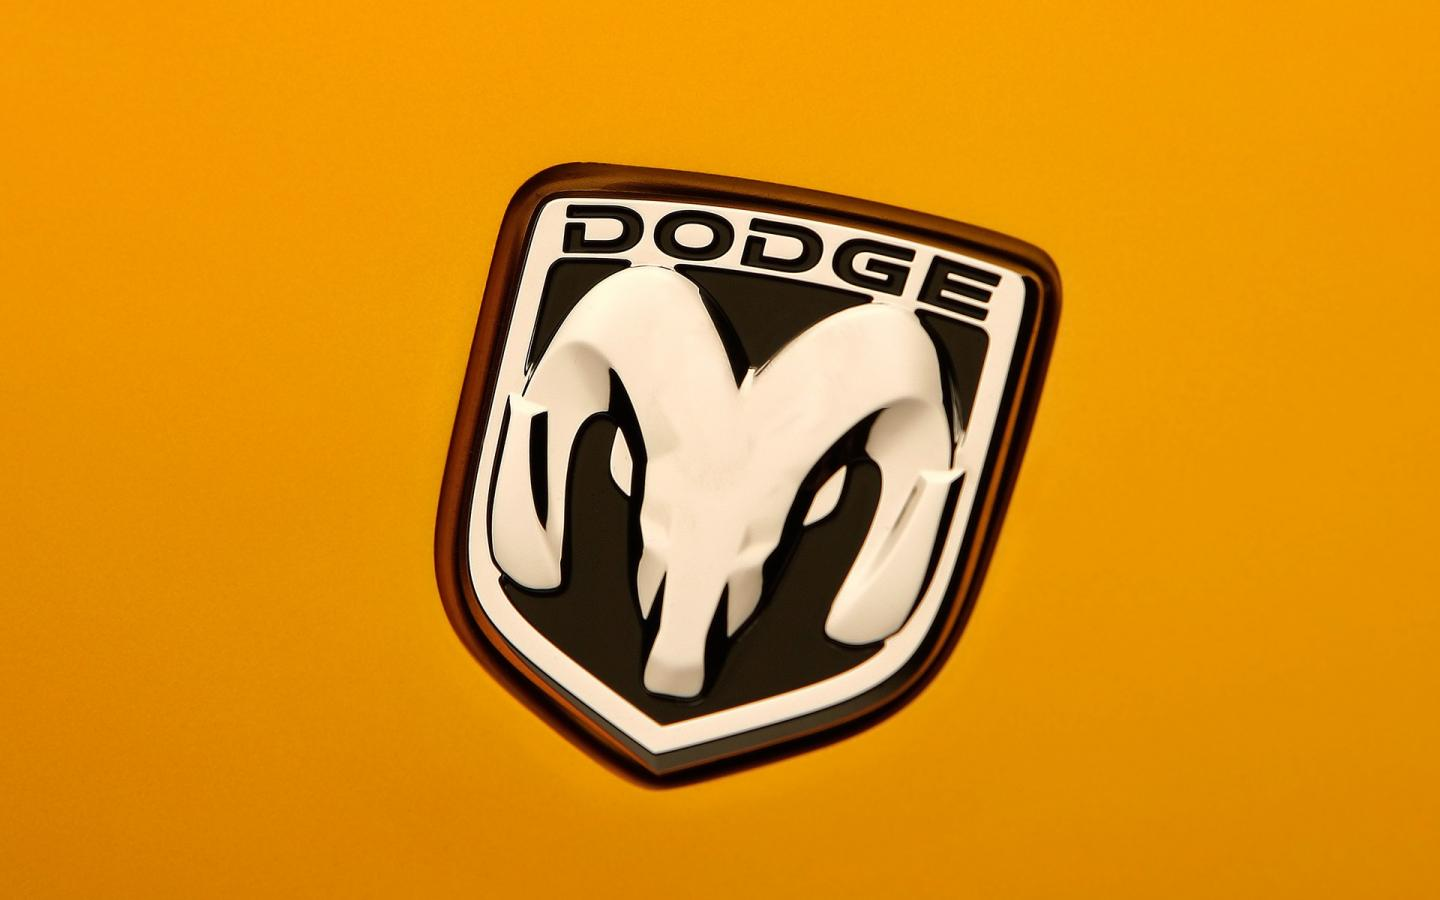 2007 Dodge Demon Roadster Concept Emblem 1440x900